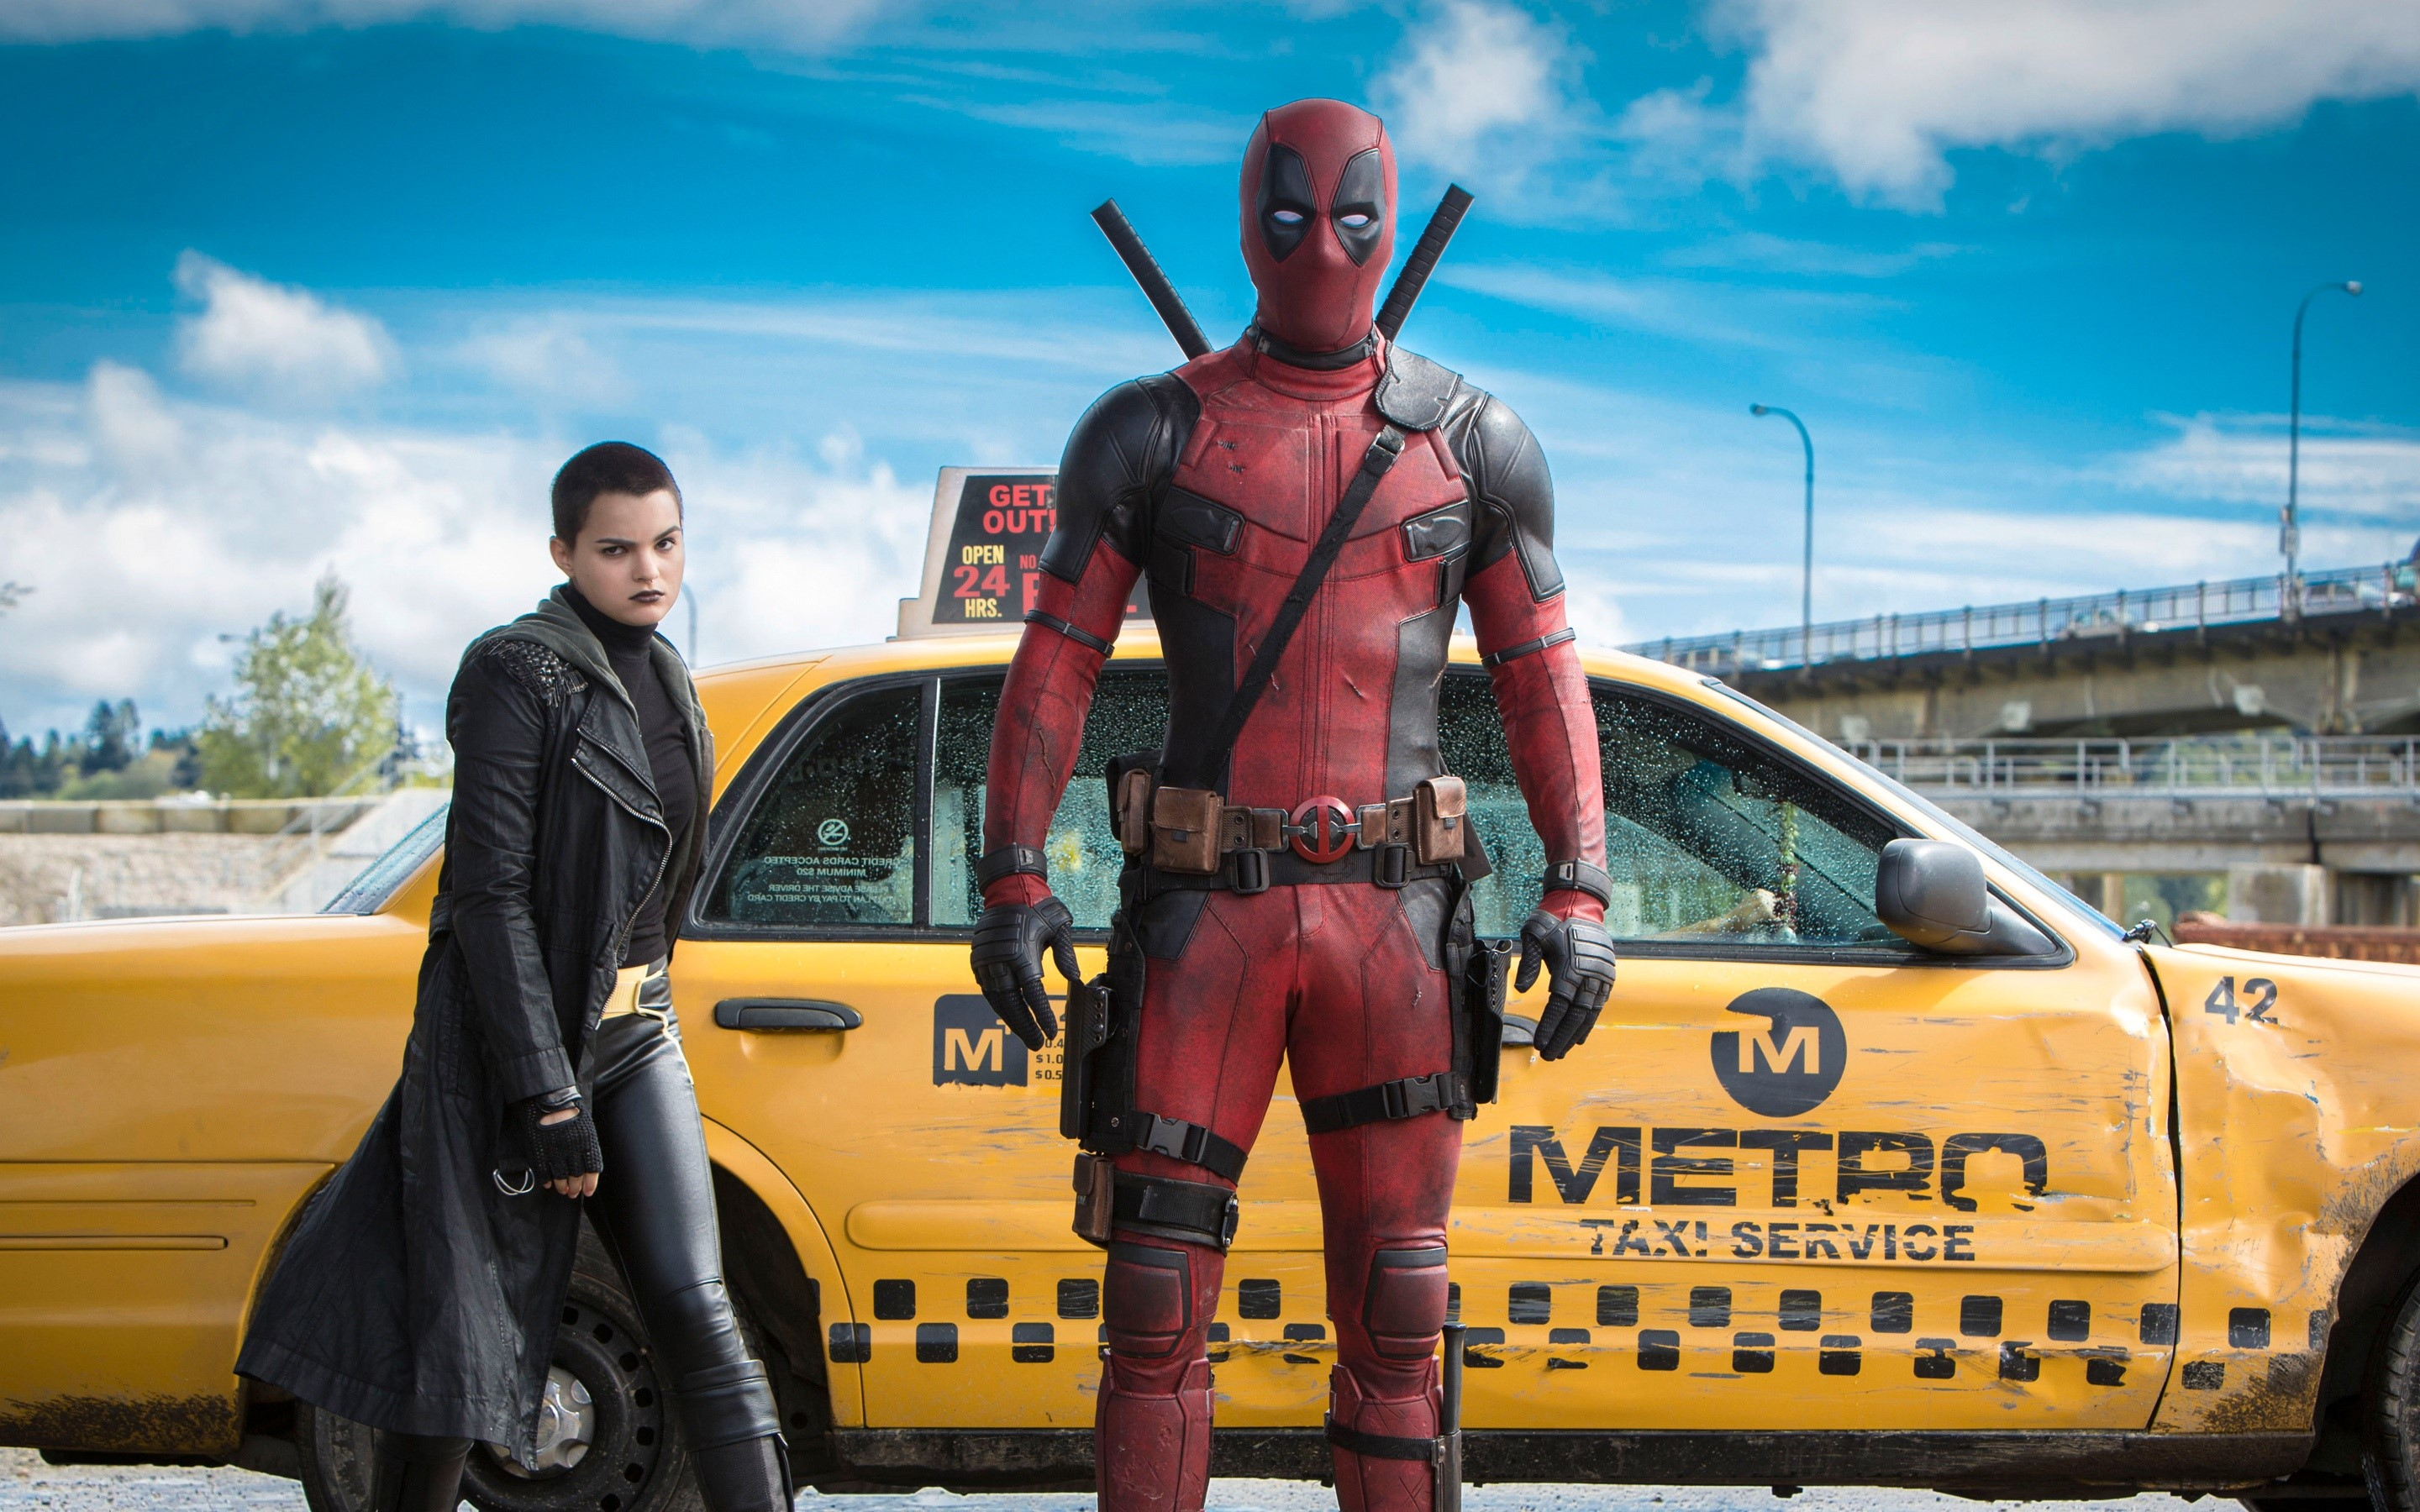 Wallpaper Ryan Reynolds as Deadpool in front of a taxi